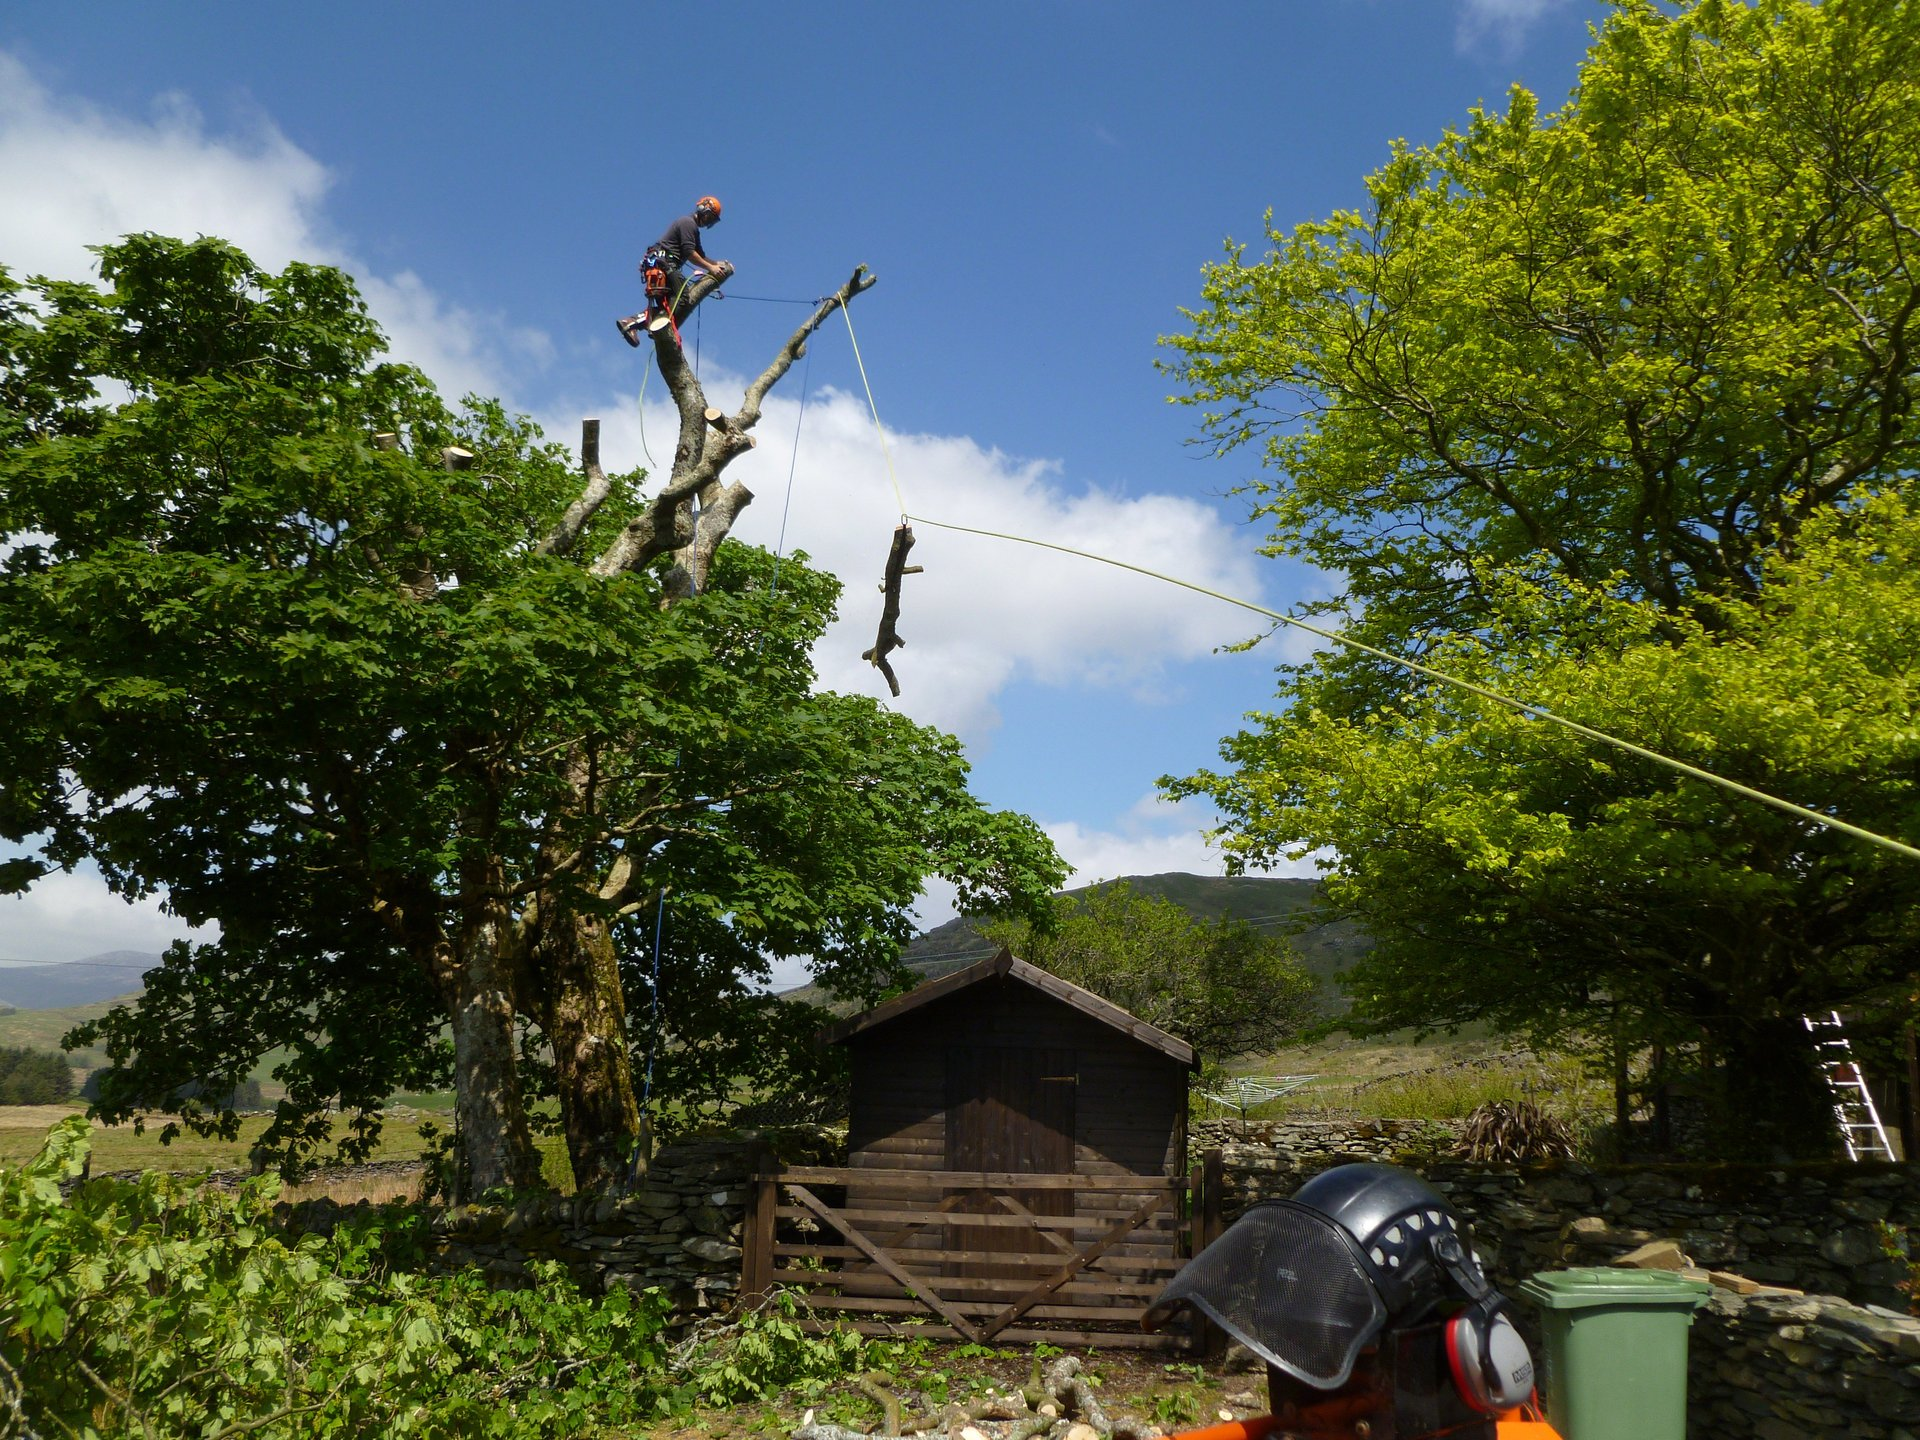 A lovely sunny North Wales day for tree surgery.